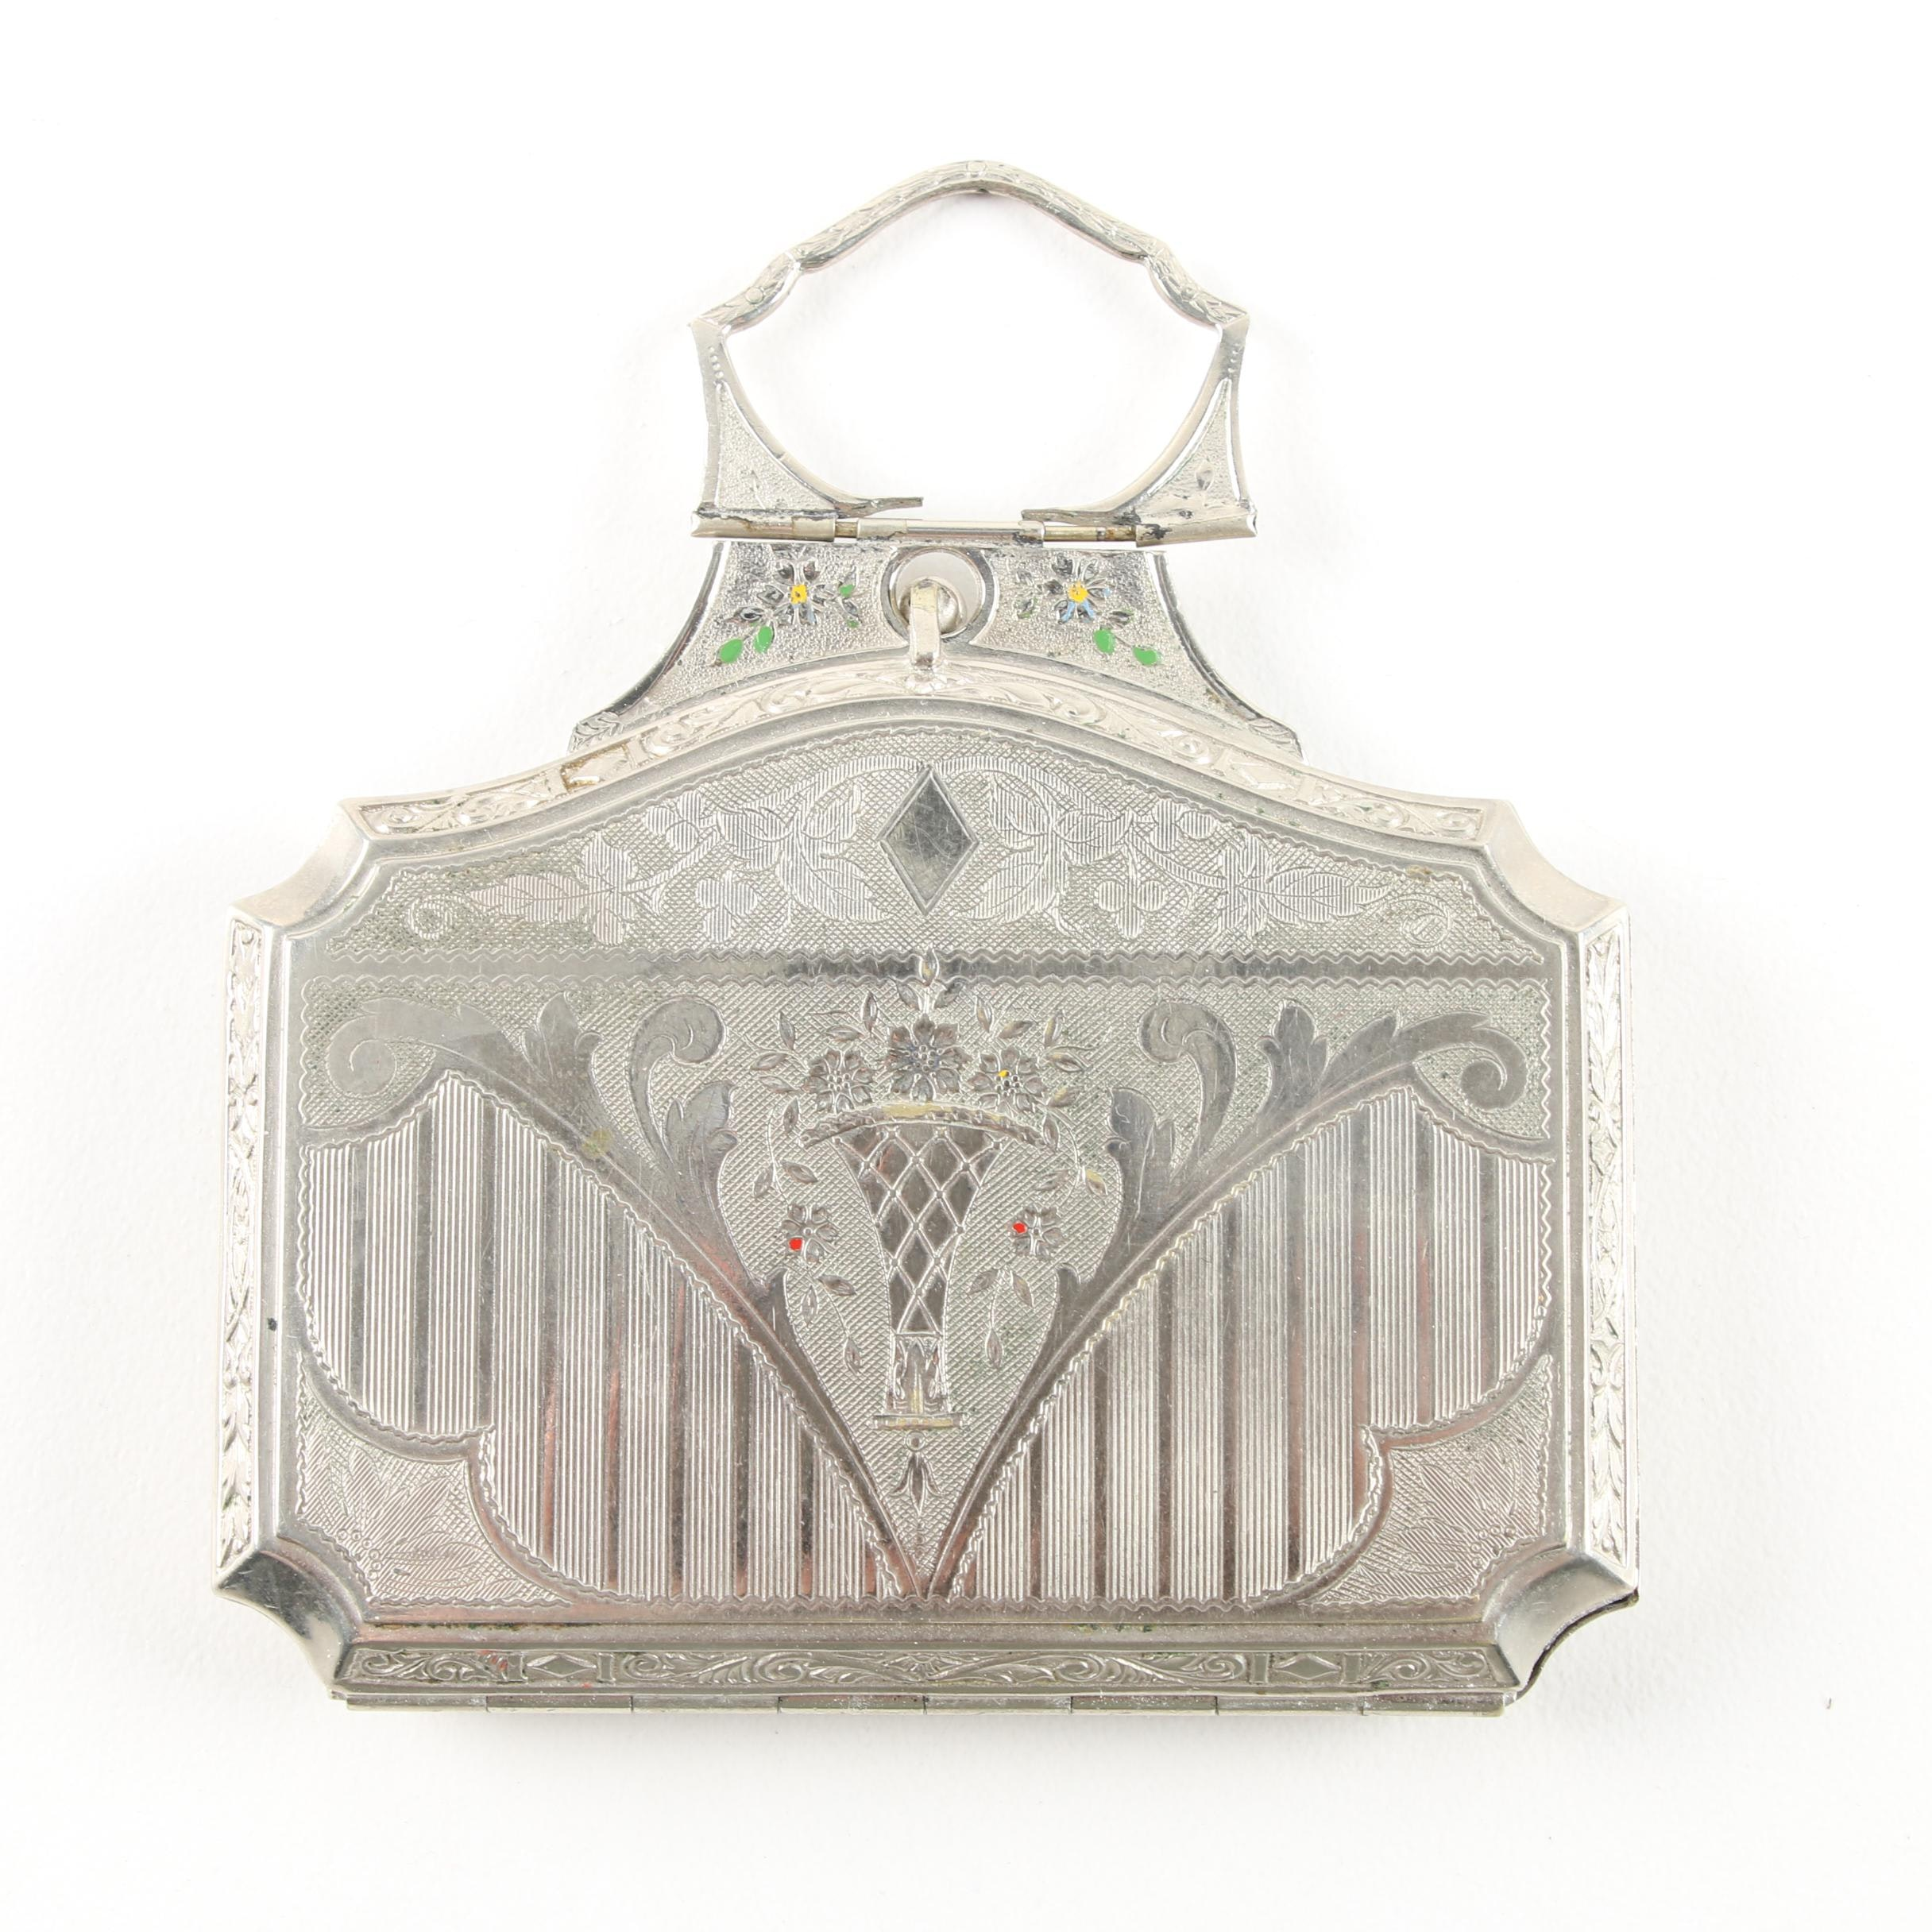 Early 20th Century Vintage Metal Compact with Mirror and Cosmetic Compartments